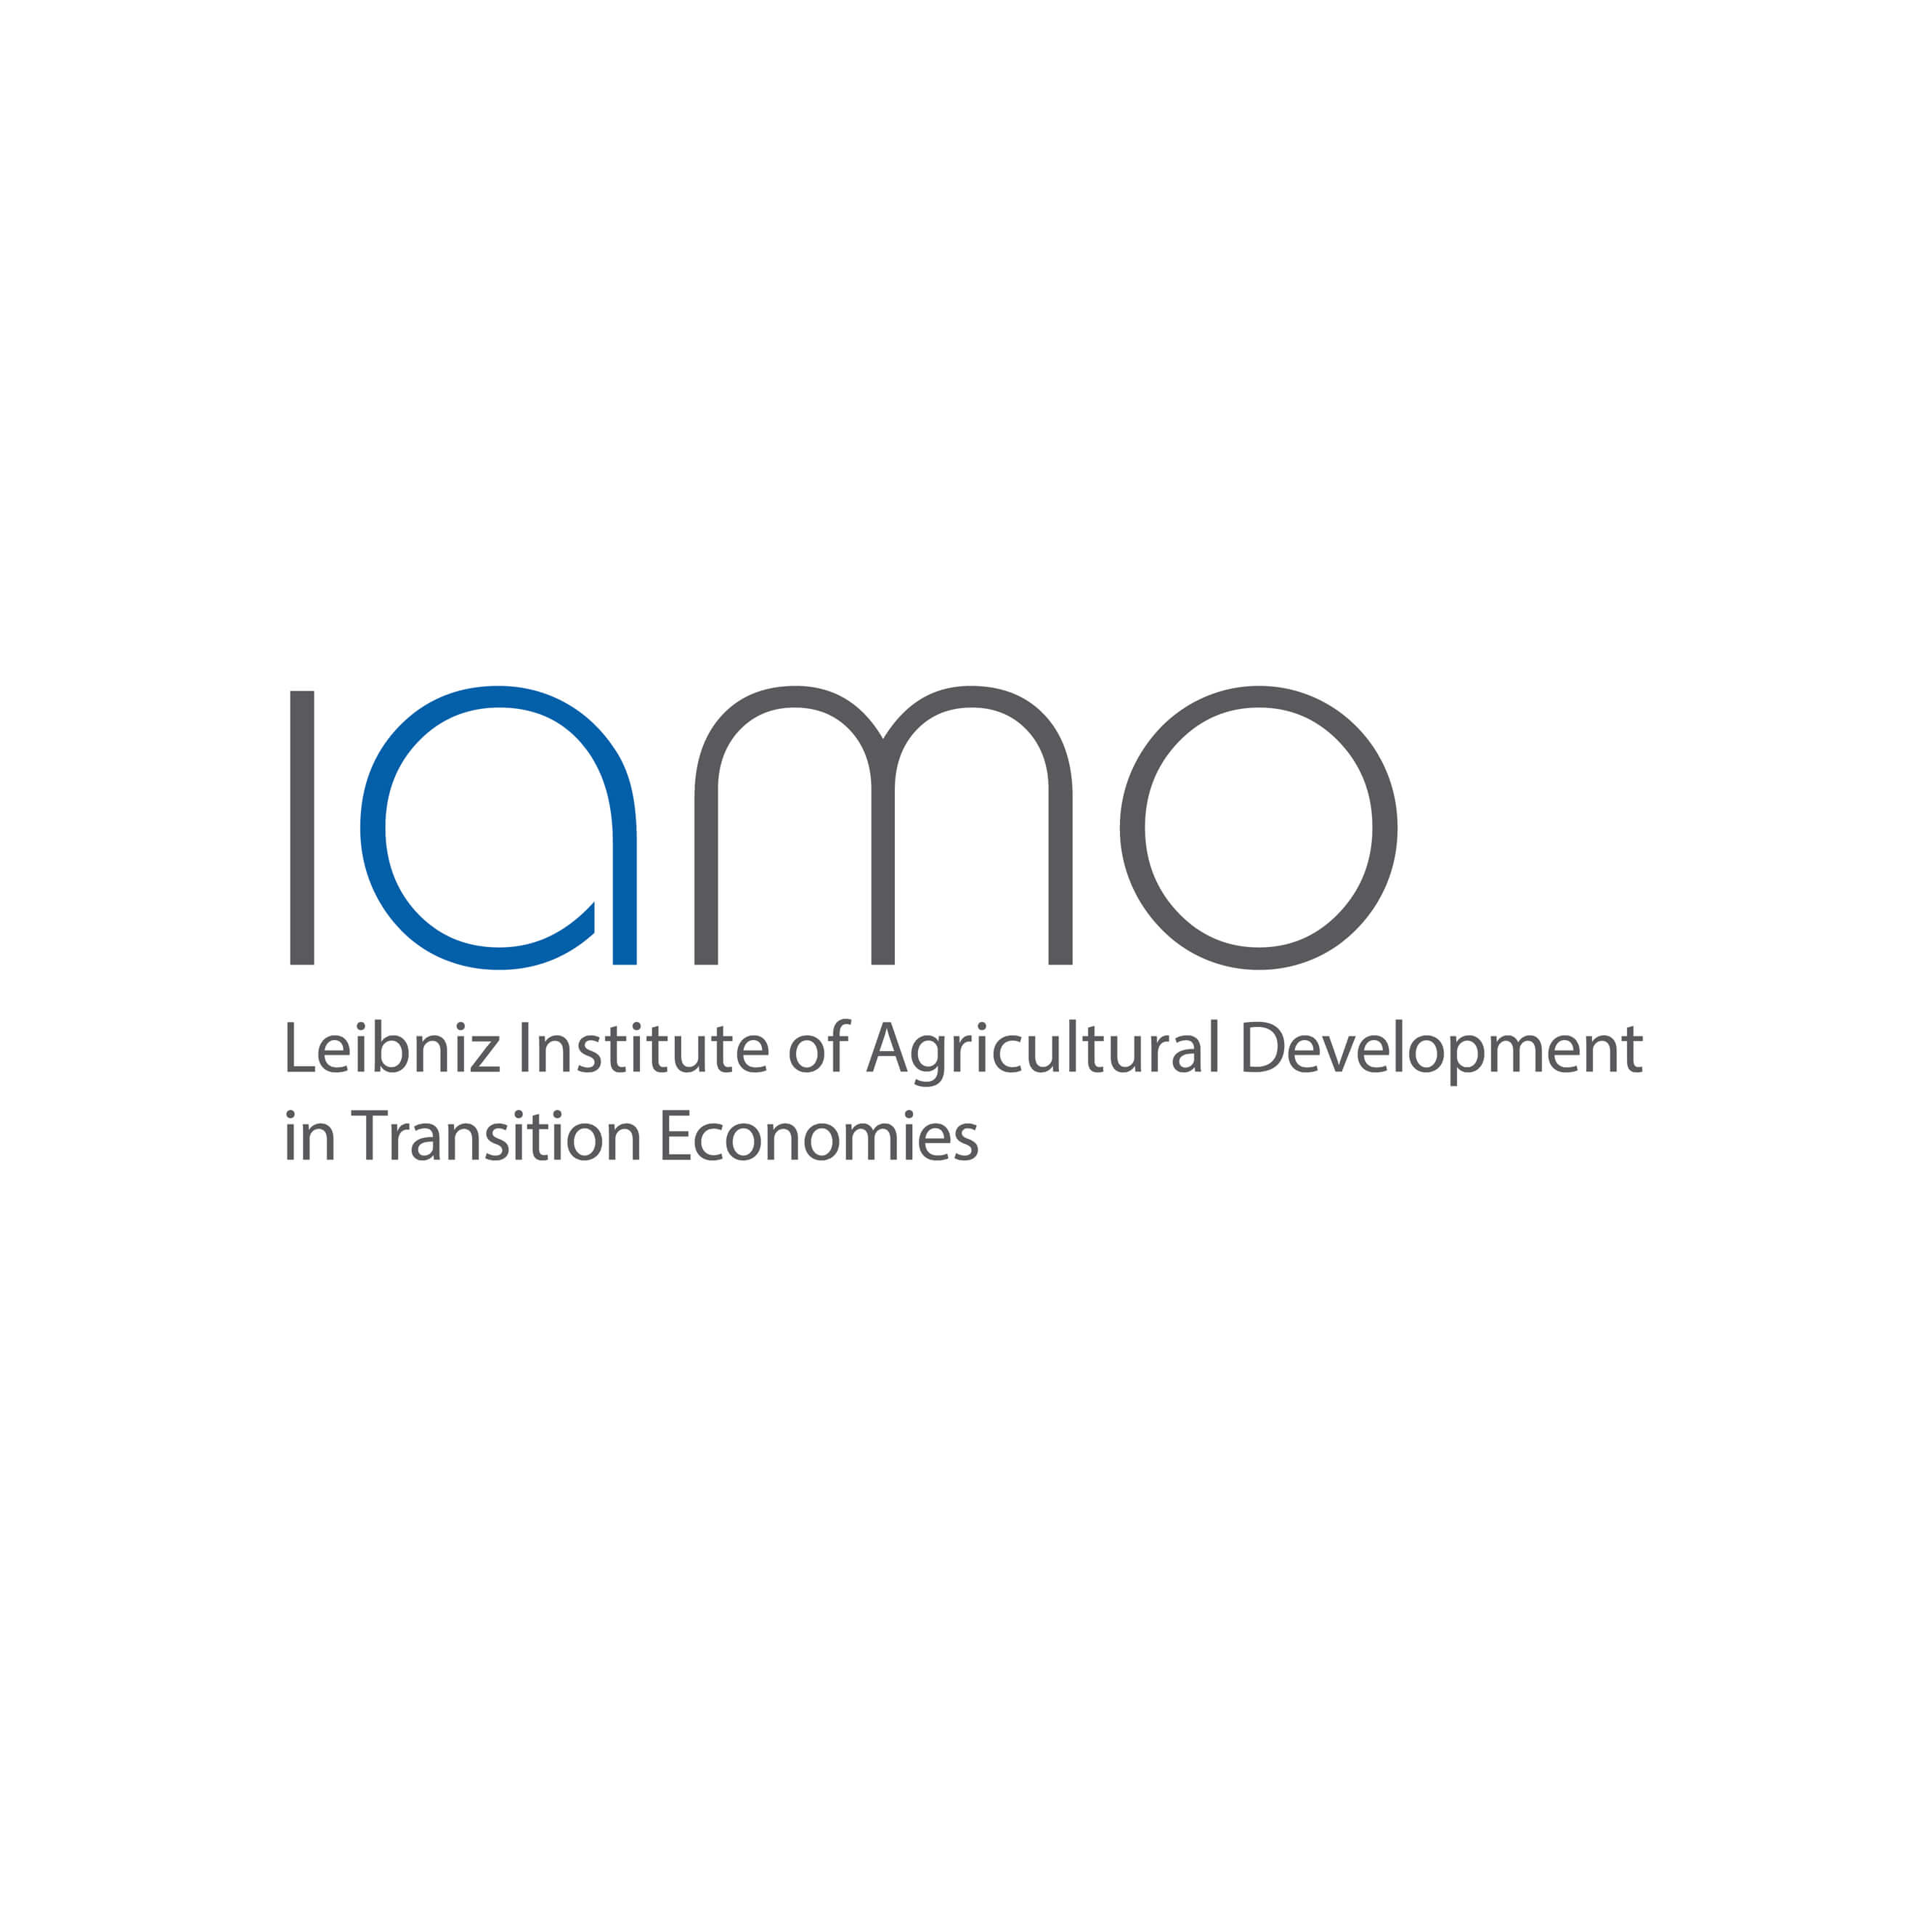 Leibniz Institute of Agricultural Development in Transition Economies